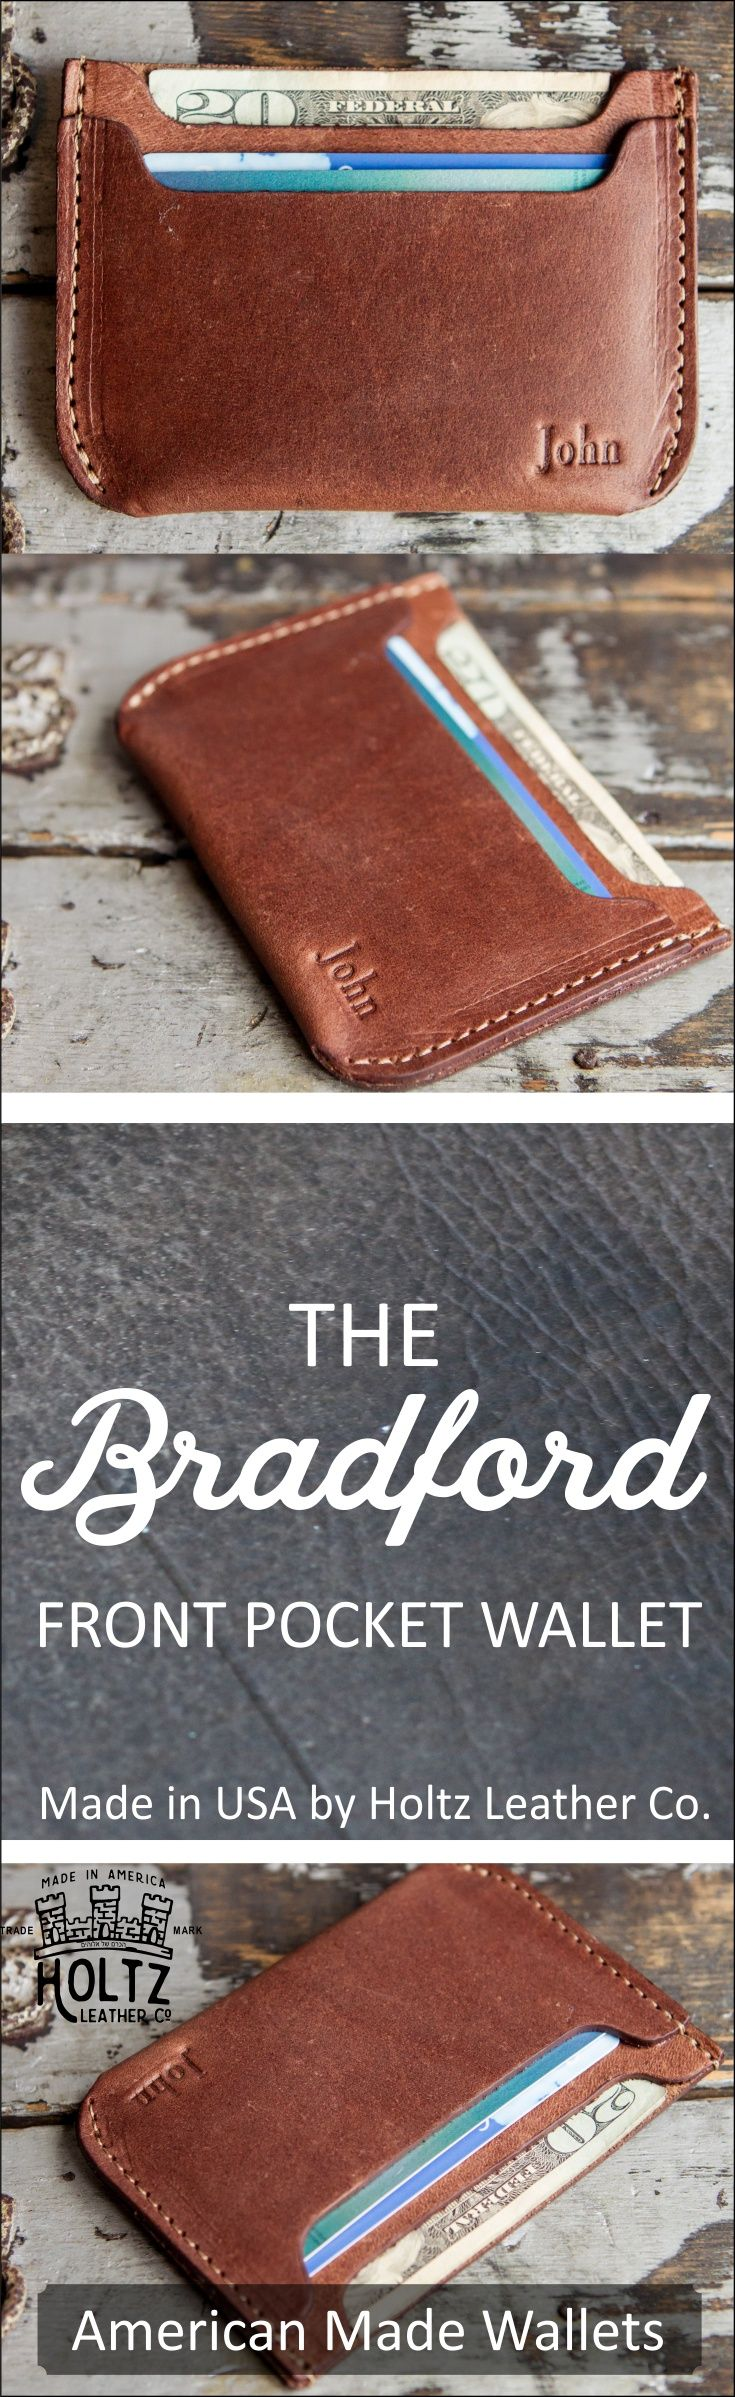 The Bradford Front Pocket Double Sleeve Fine Leather Wallet is a unique and timeless item! It is handmade right here in our shop with the finest of Full Grain American leathers. We hand–pick our leather hides from a local tannery for a rustic look and feel. This is a gift that will be used and loved for a lifetime! It's perfect for the executive, professional, father, or dear friend in your life.